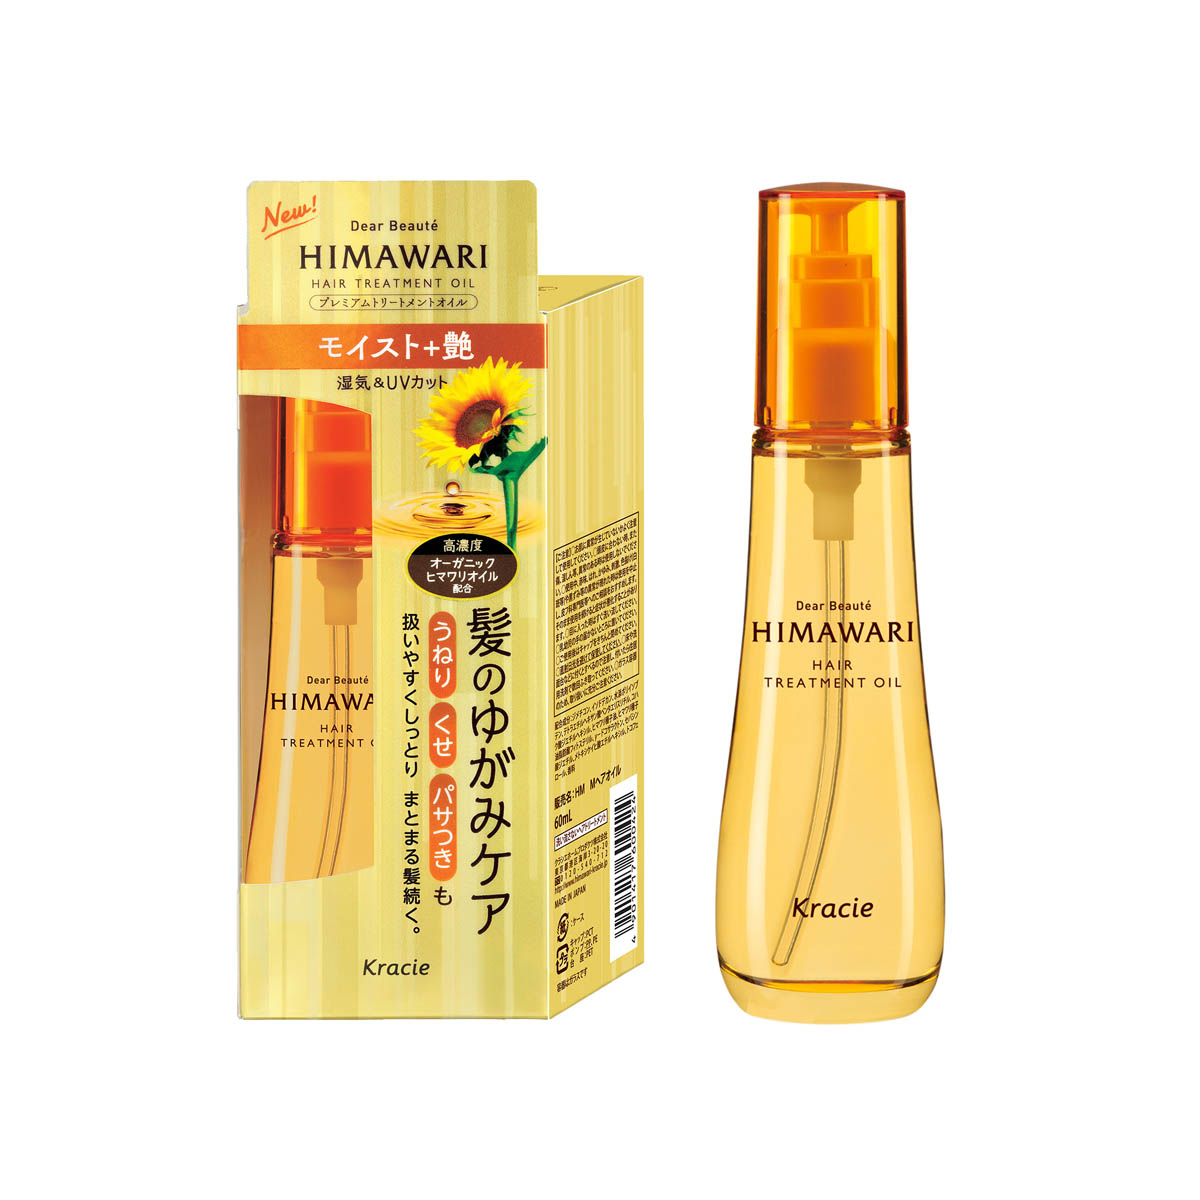 Himawari Hair Treatment Oil (Moist)